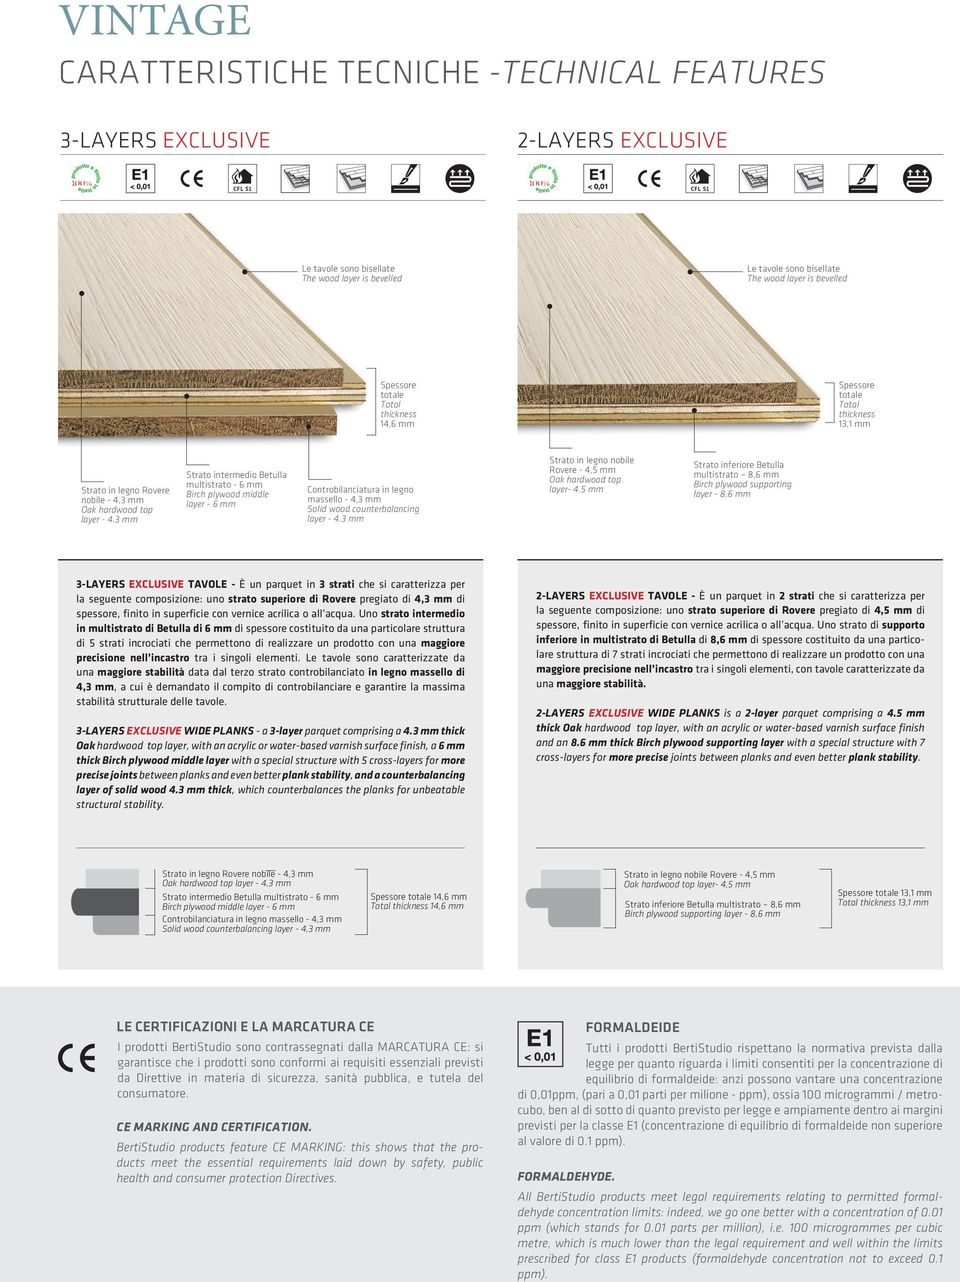 3 mm Strato intermedio Betulla multistrato - 6 mm Birch plywood middle layer - 6 mm Controbilanciatura in legno massello - 4,3 mm Solid wood counterbalancing layer - 4.